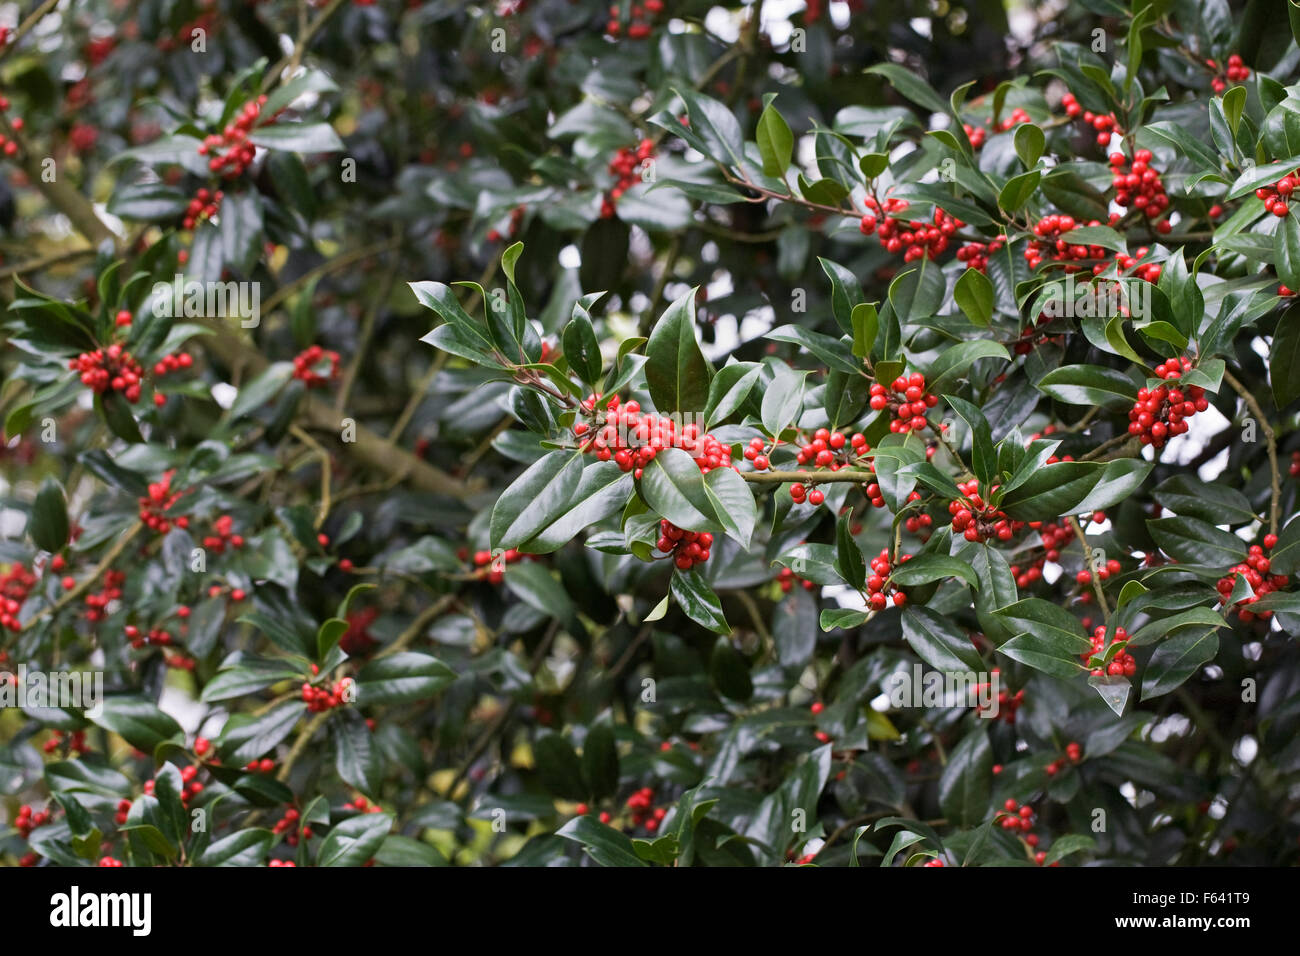 Ilex x altaclerensis 'James G Esson'. Holly berries in Autumn. - Stock Image